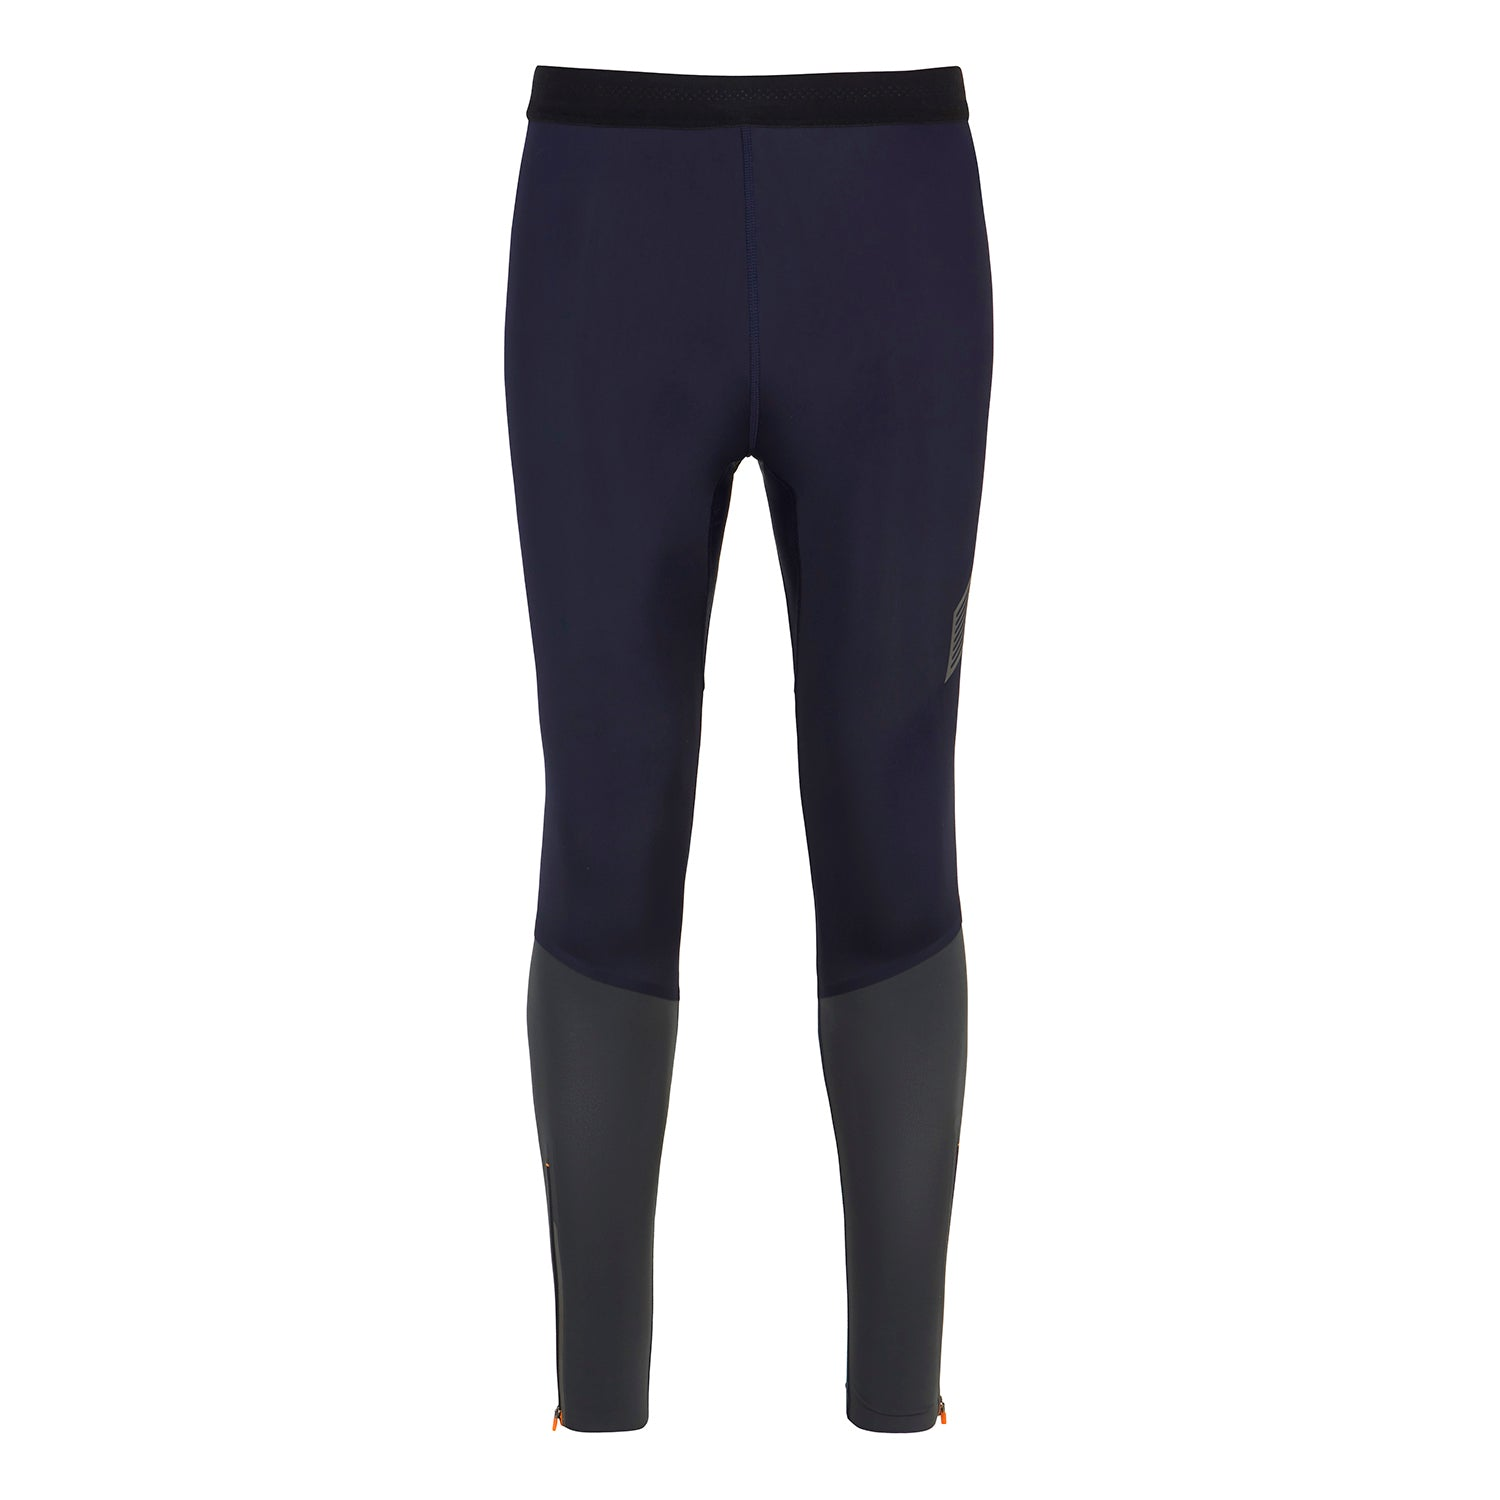 Soar | Dual Fabric Tights 2.0